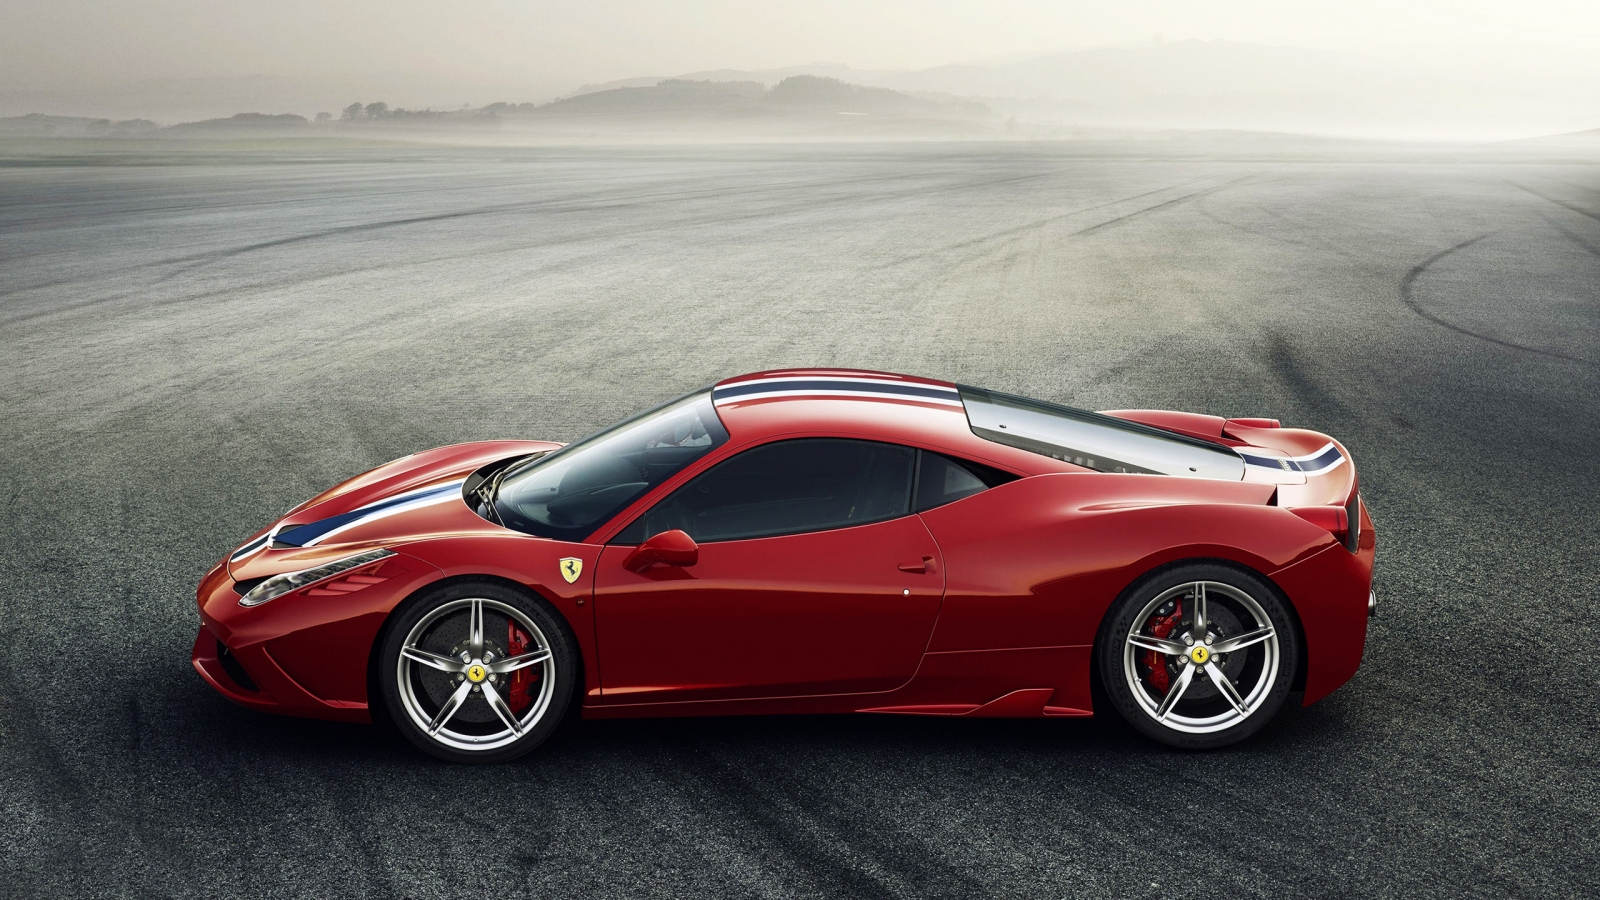 Red Ferrari 458 Speciale for 1600 x 900 HDTV resolution